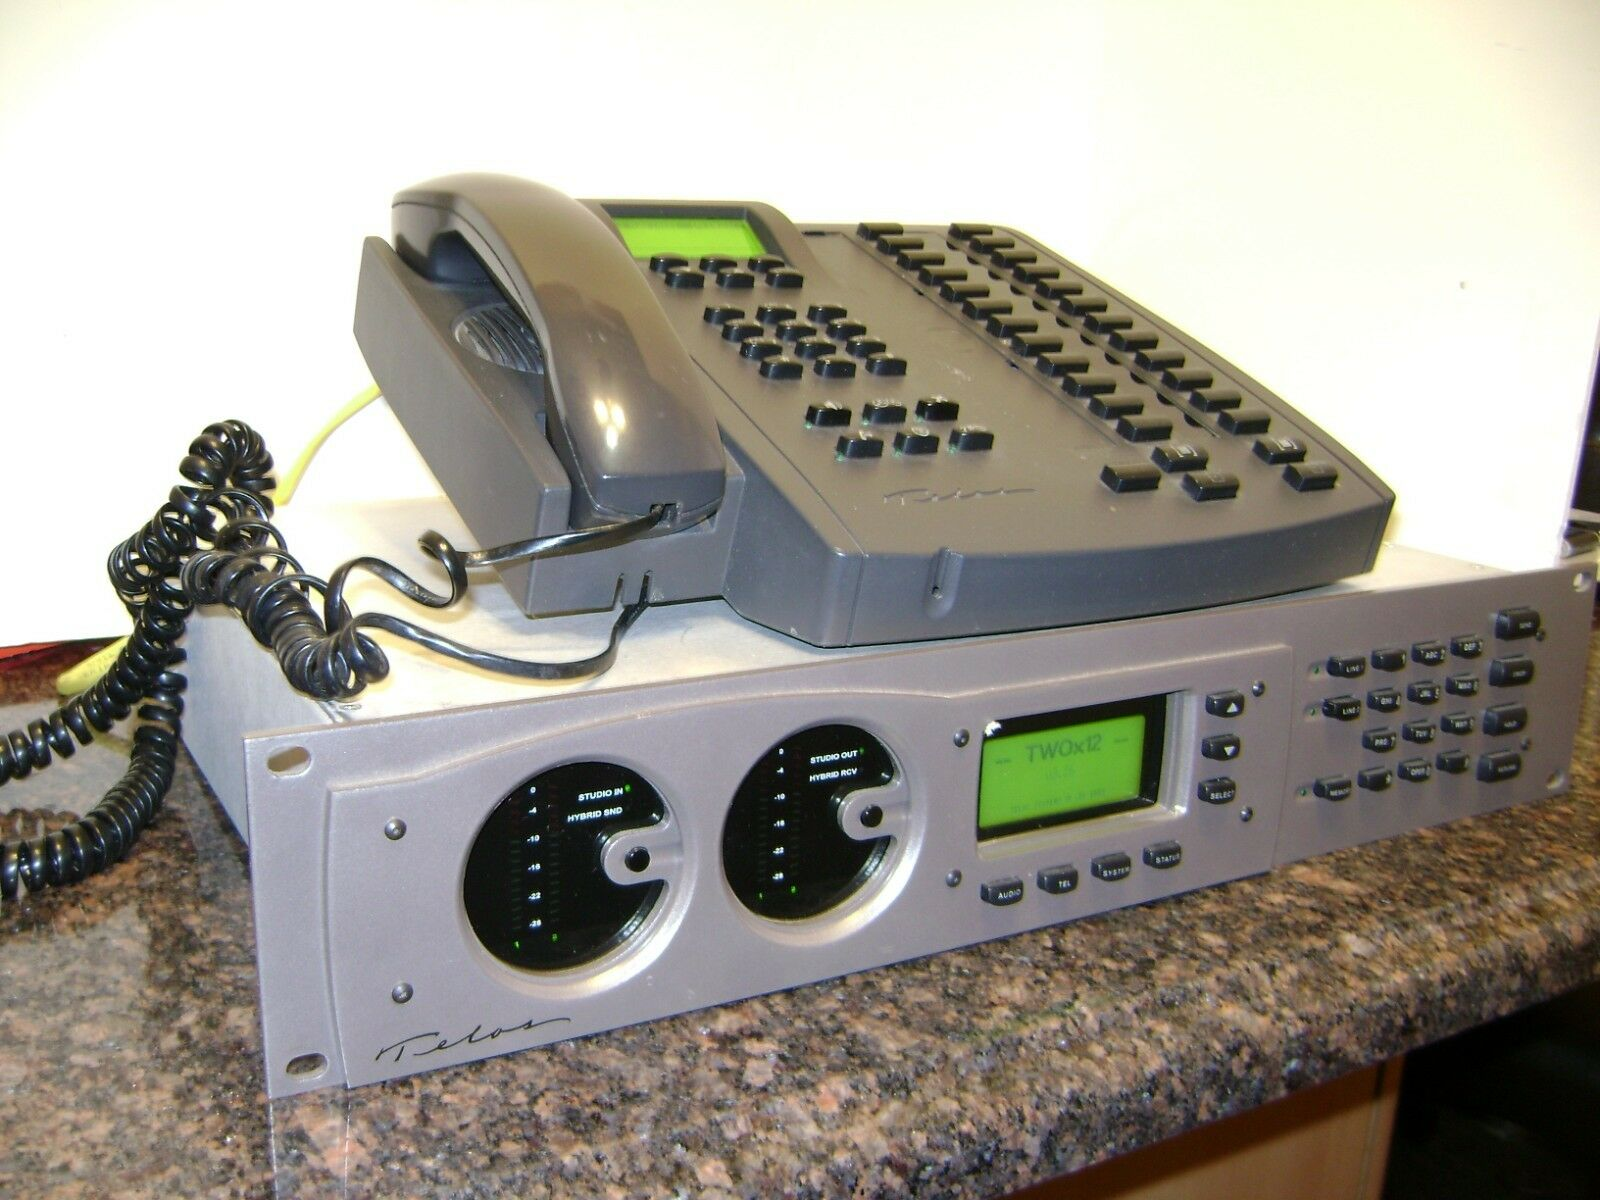 Telos Two X 12 POTS IP 6 Line Broadcast Studio Talk Show Phone System,